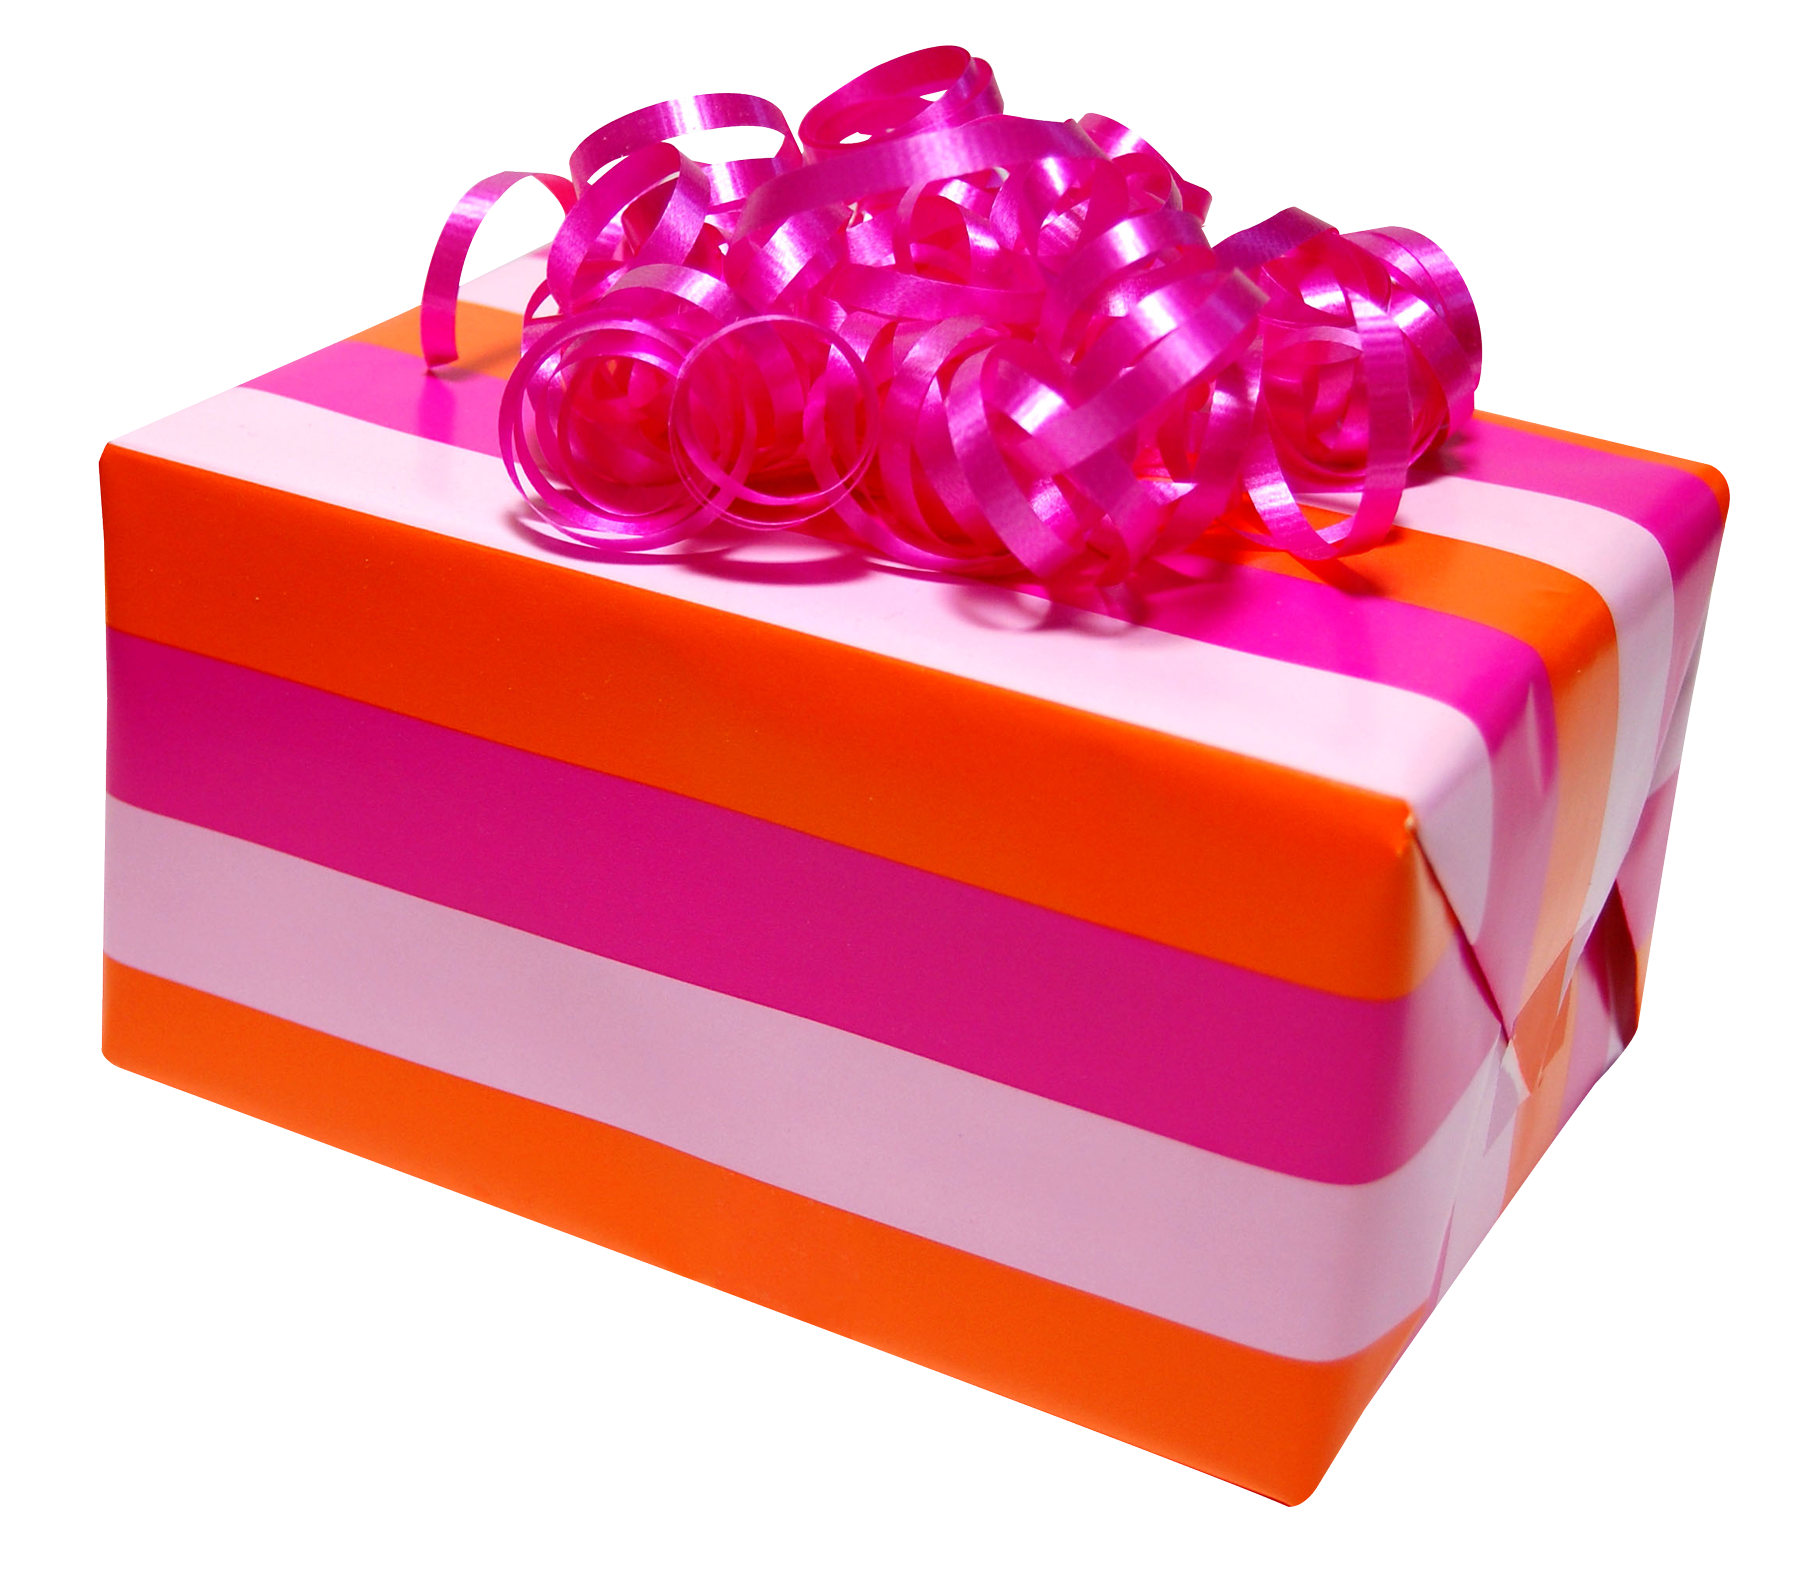 Pink Present Box PNG Image